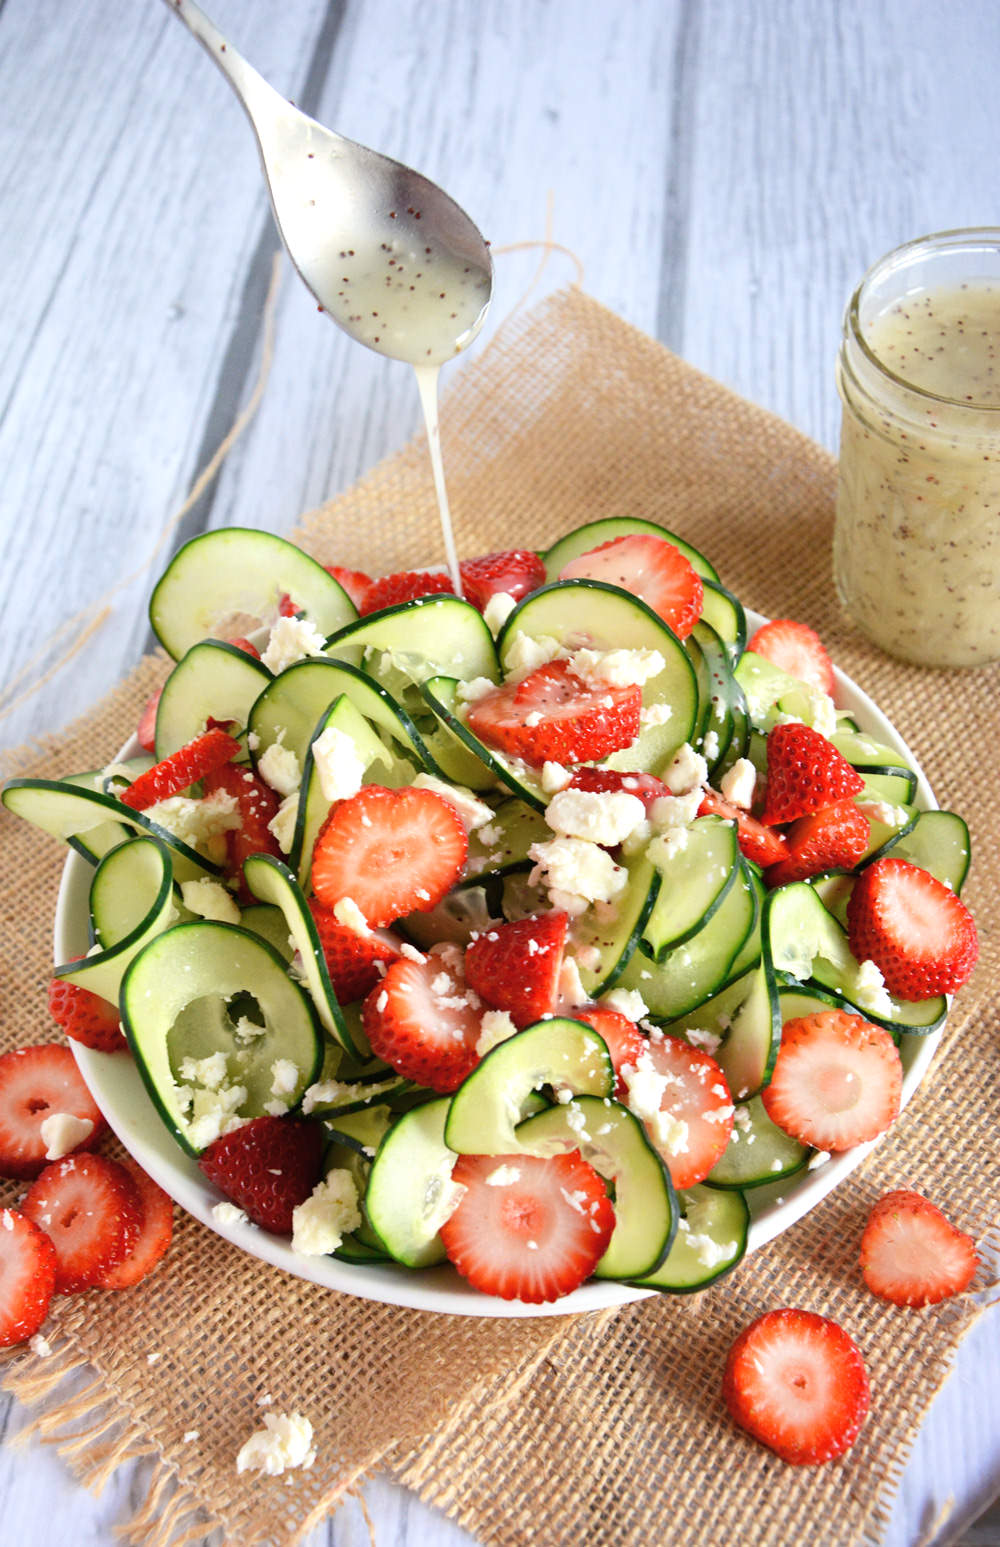 A refreshing and crisp salad with spiralized cucumbers, juicy strawberries and feta salad all topped with a fruity poppyseed dressing!